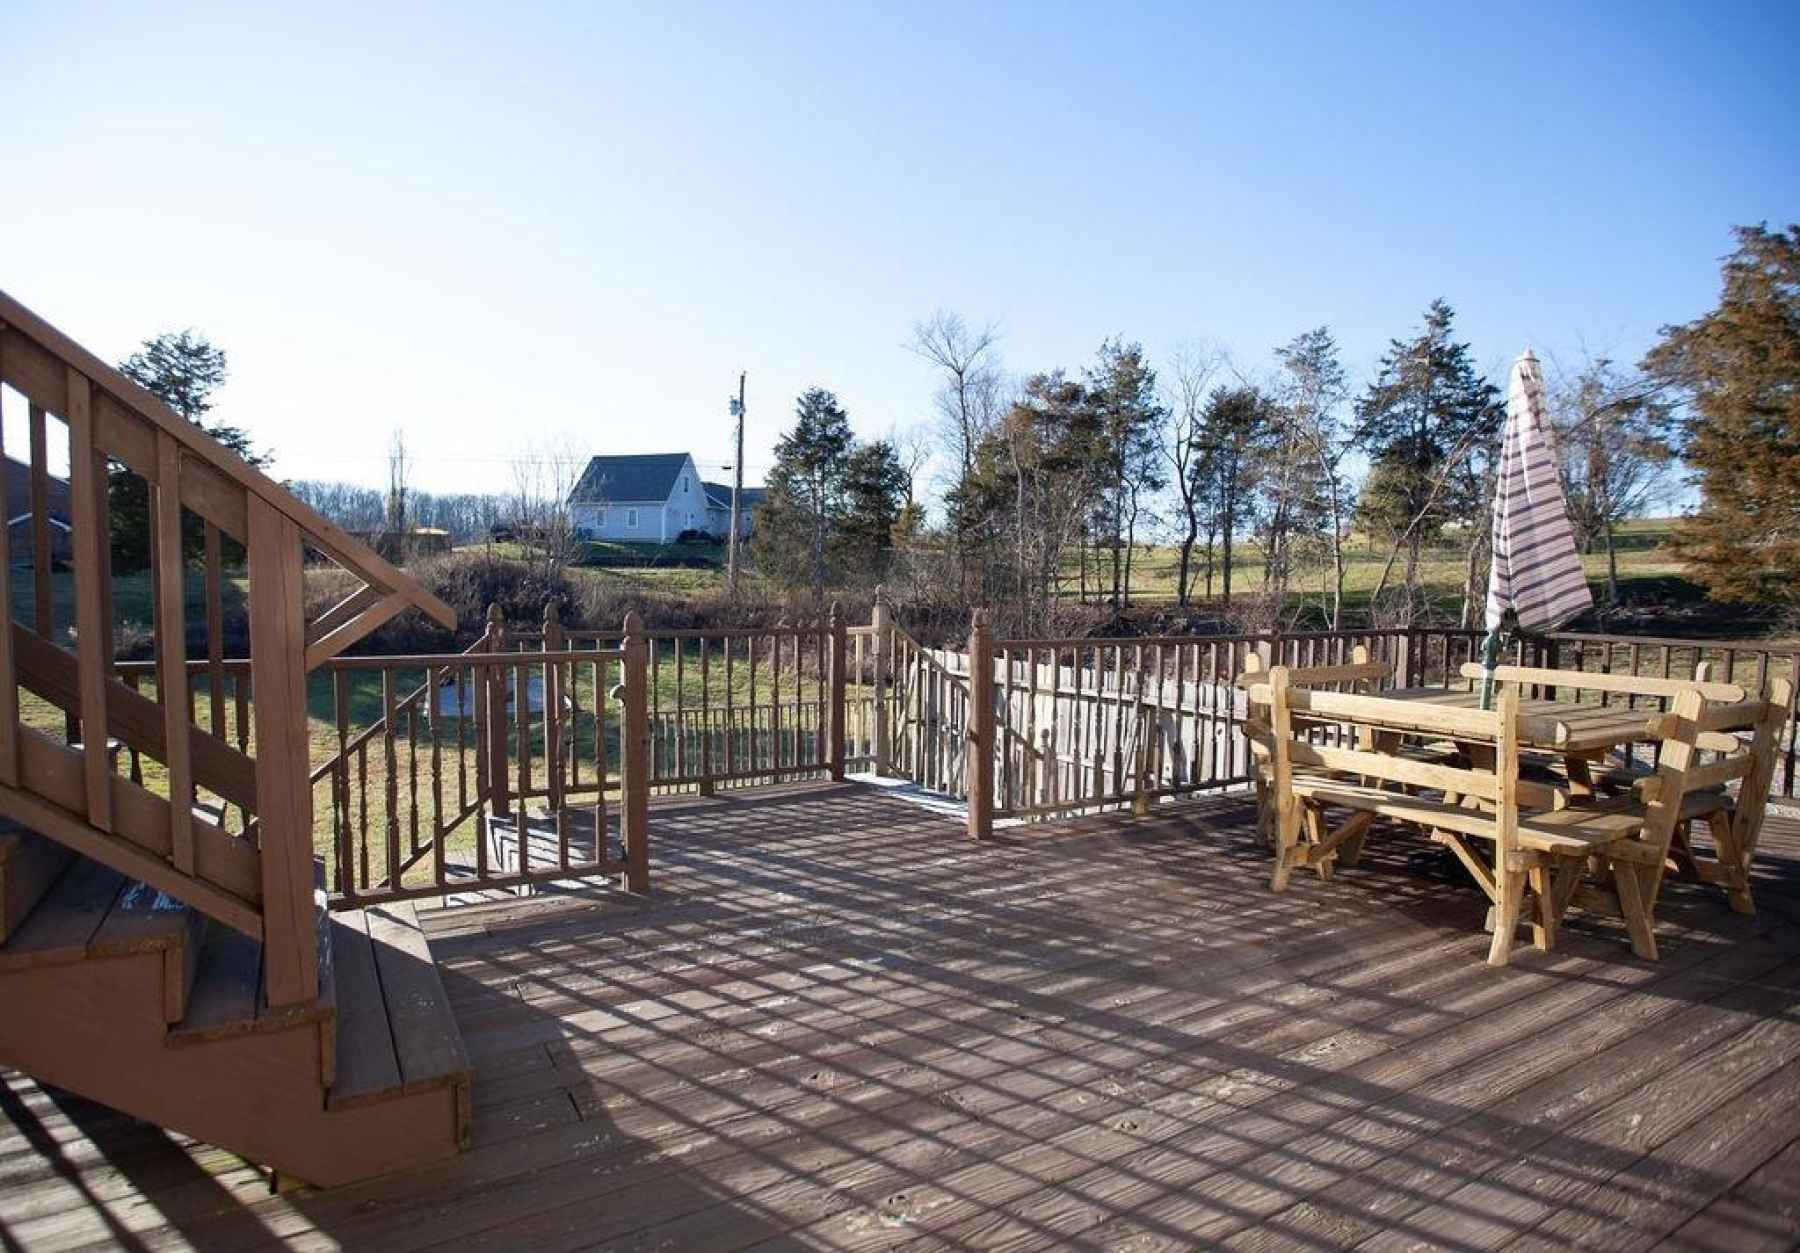 Enjoy the view on this large upper wooden deck with plenty of room for entertaining family and friends!